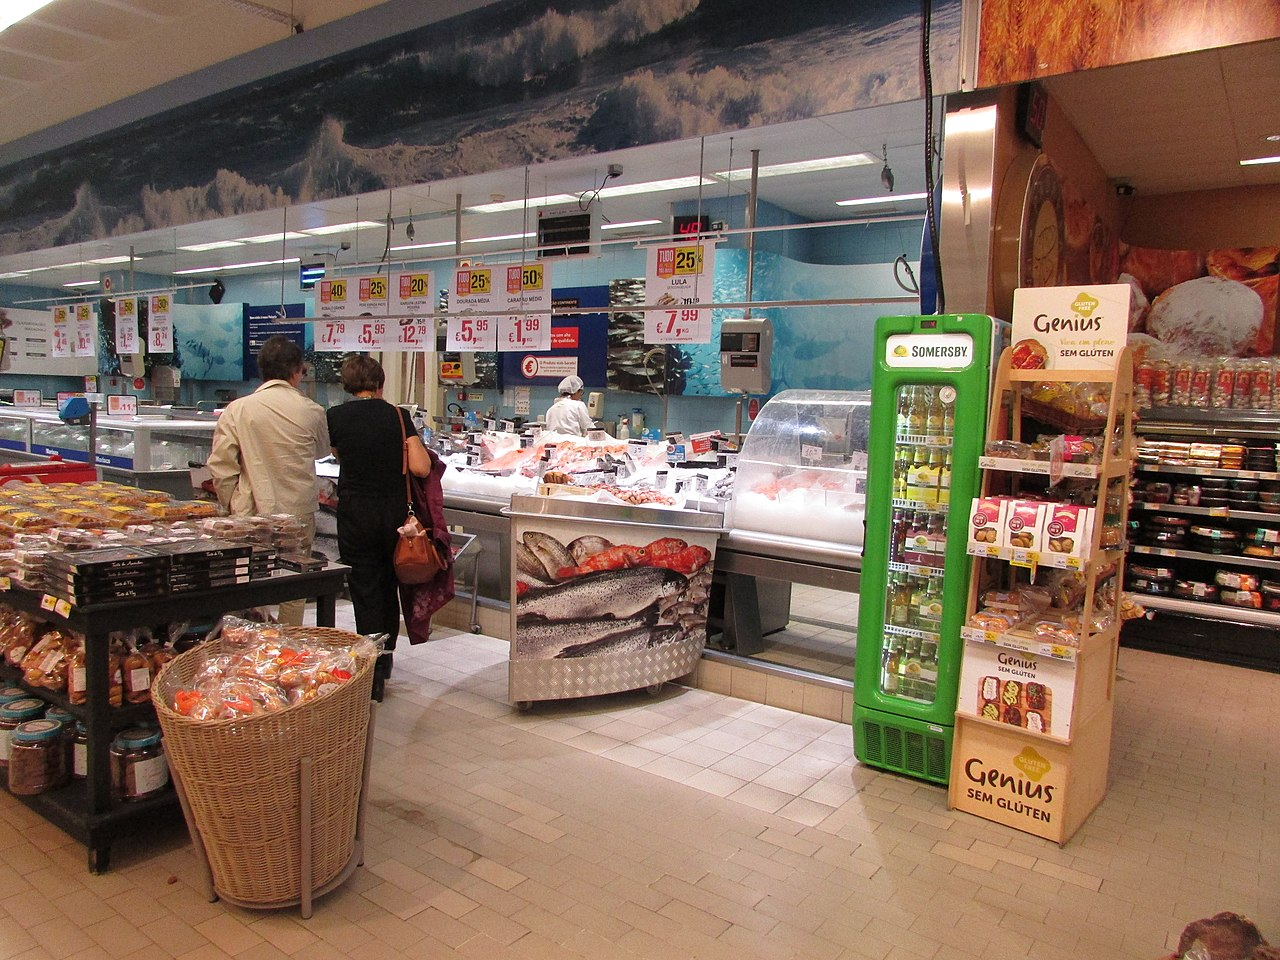 File:11-05-2017 Fish counter Inside Continente supermarket ...